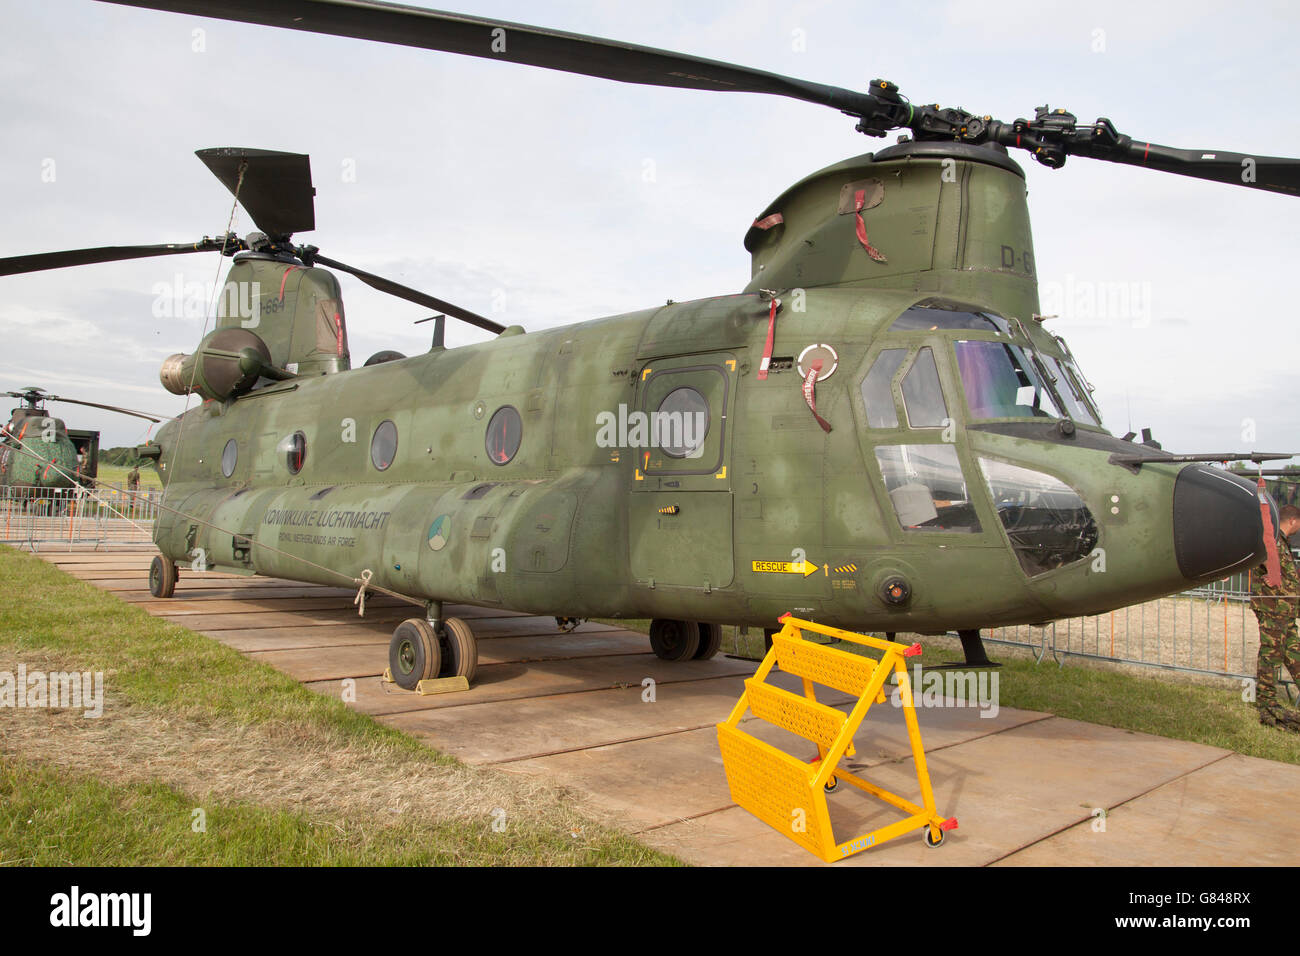 LEEUWARDEN, NETHERLANDS - JUNI 11 2016: Parked green Chinook CH-47, Tandem rotor military helicopter. - Stock Image